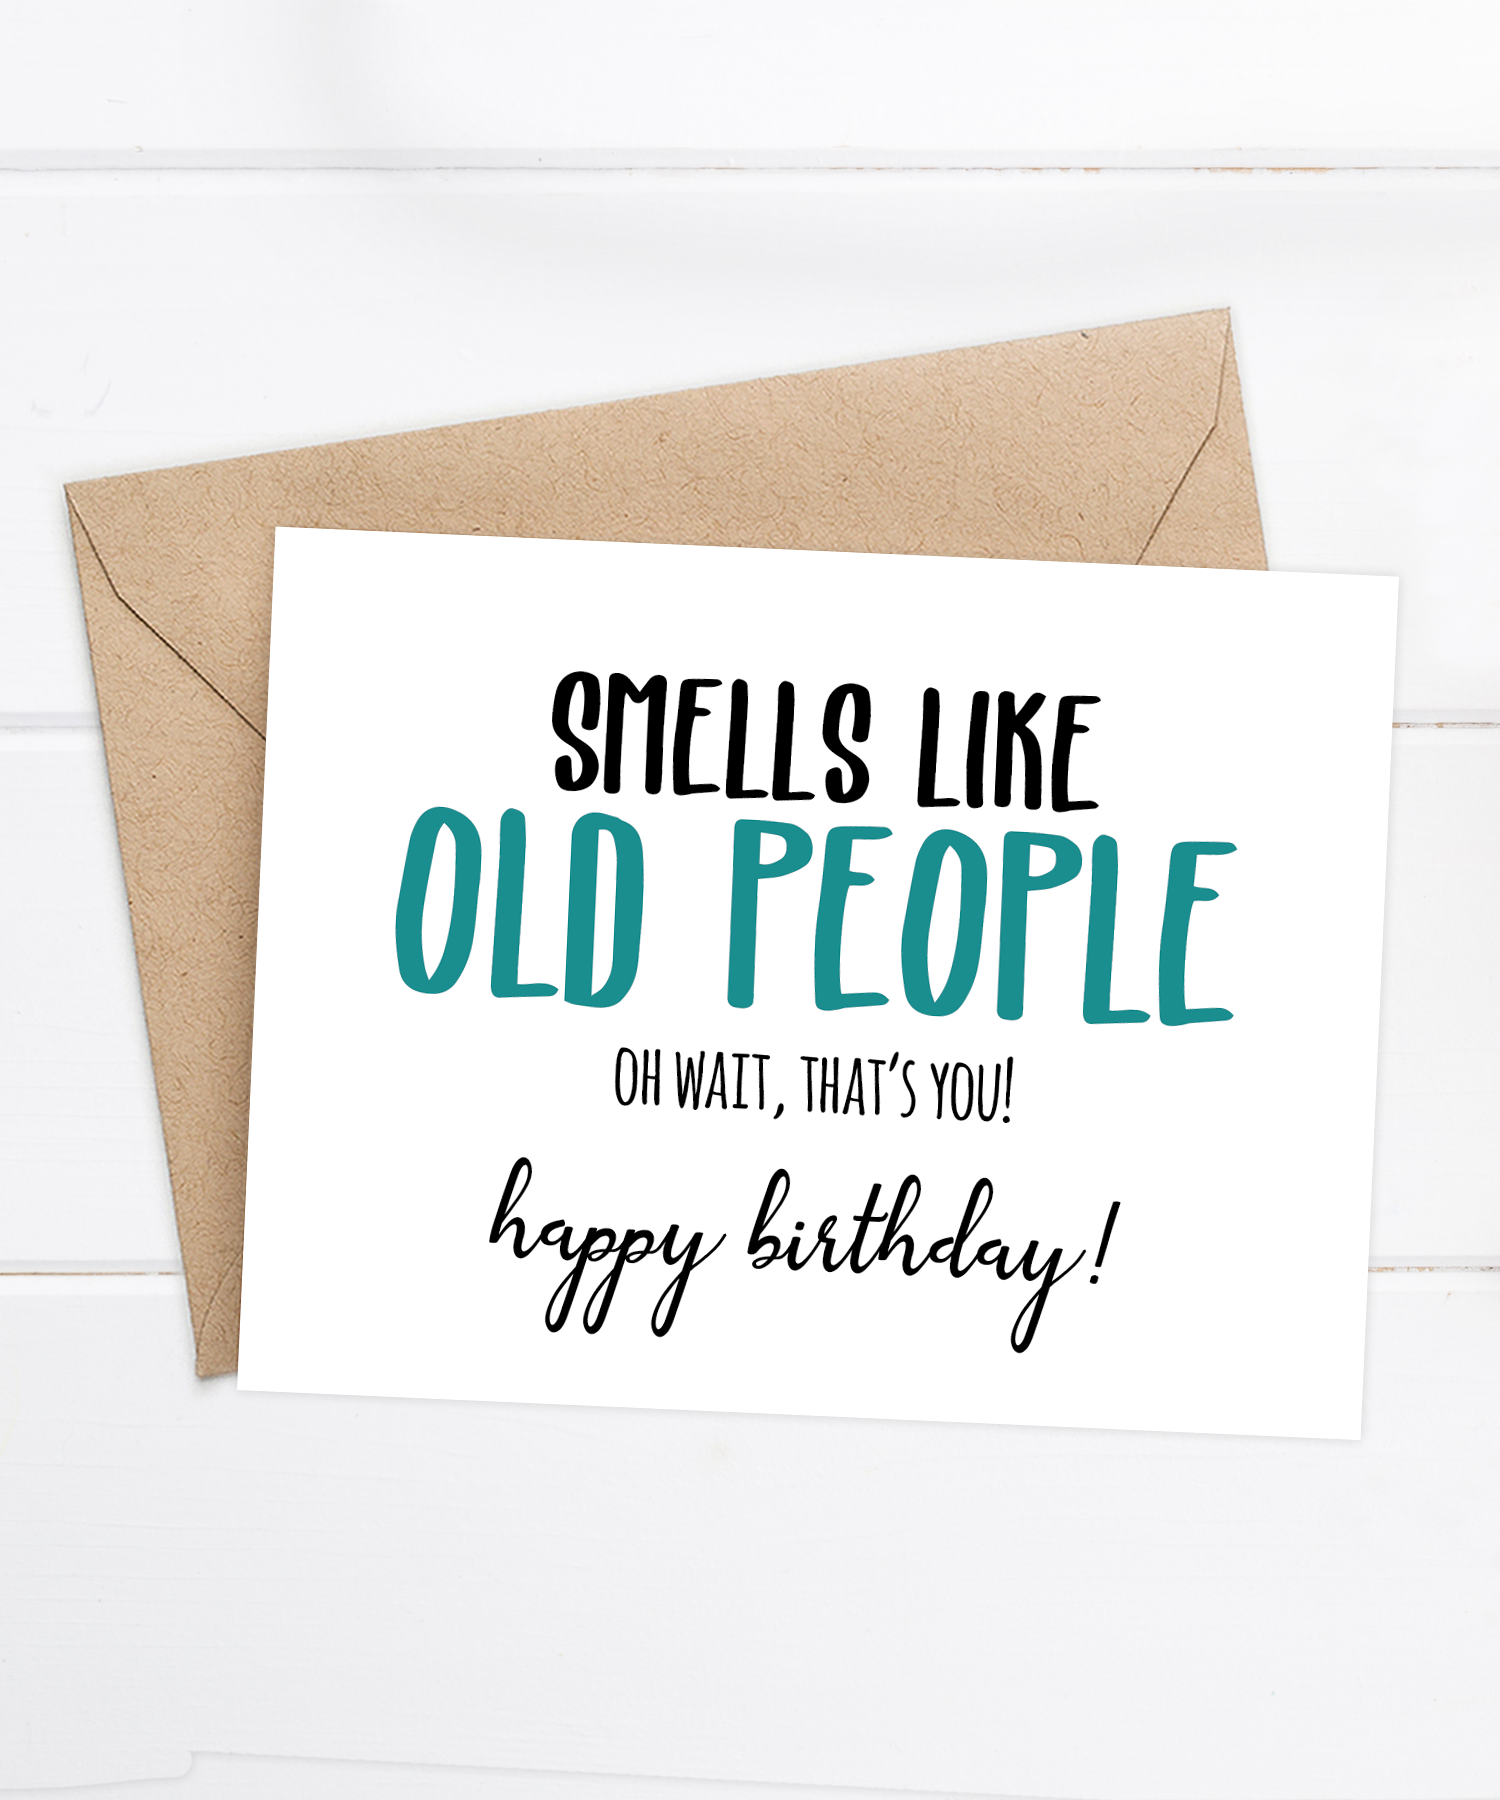 Smells Like Old People Oh Wait Thats You Happy Birthday